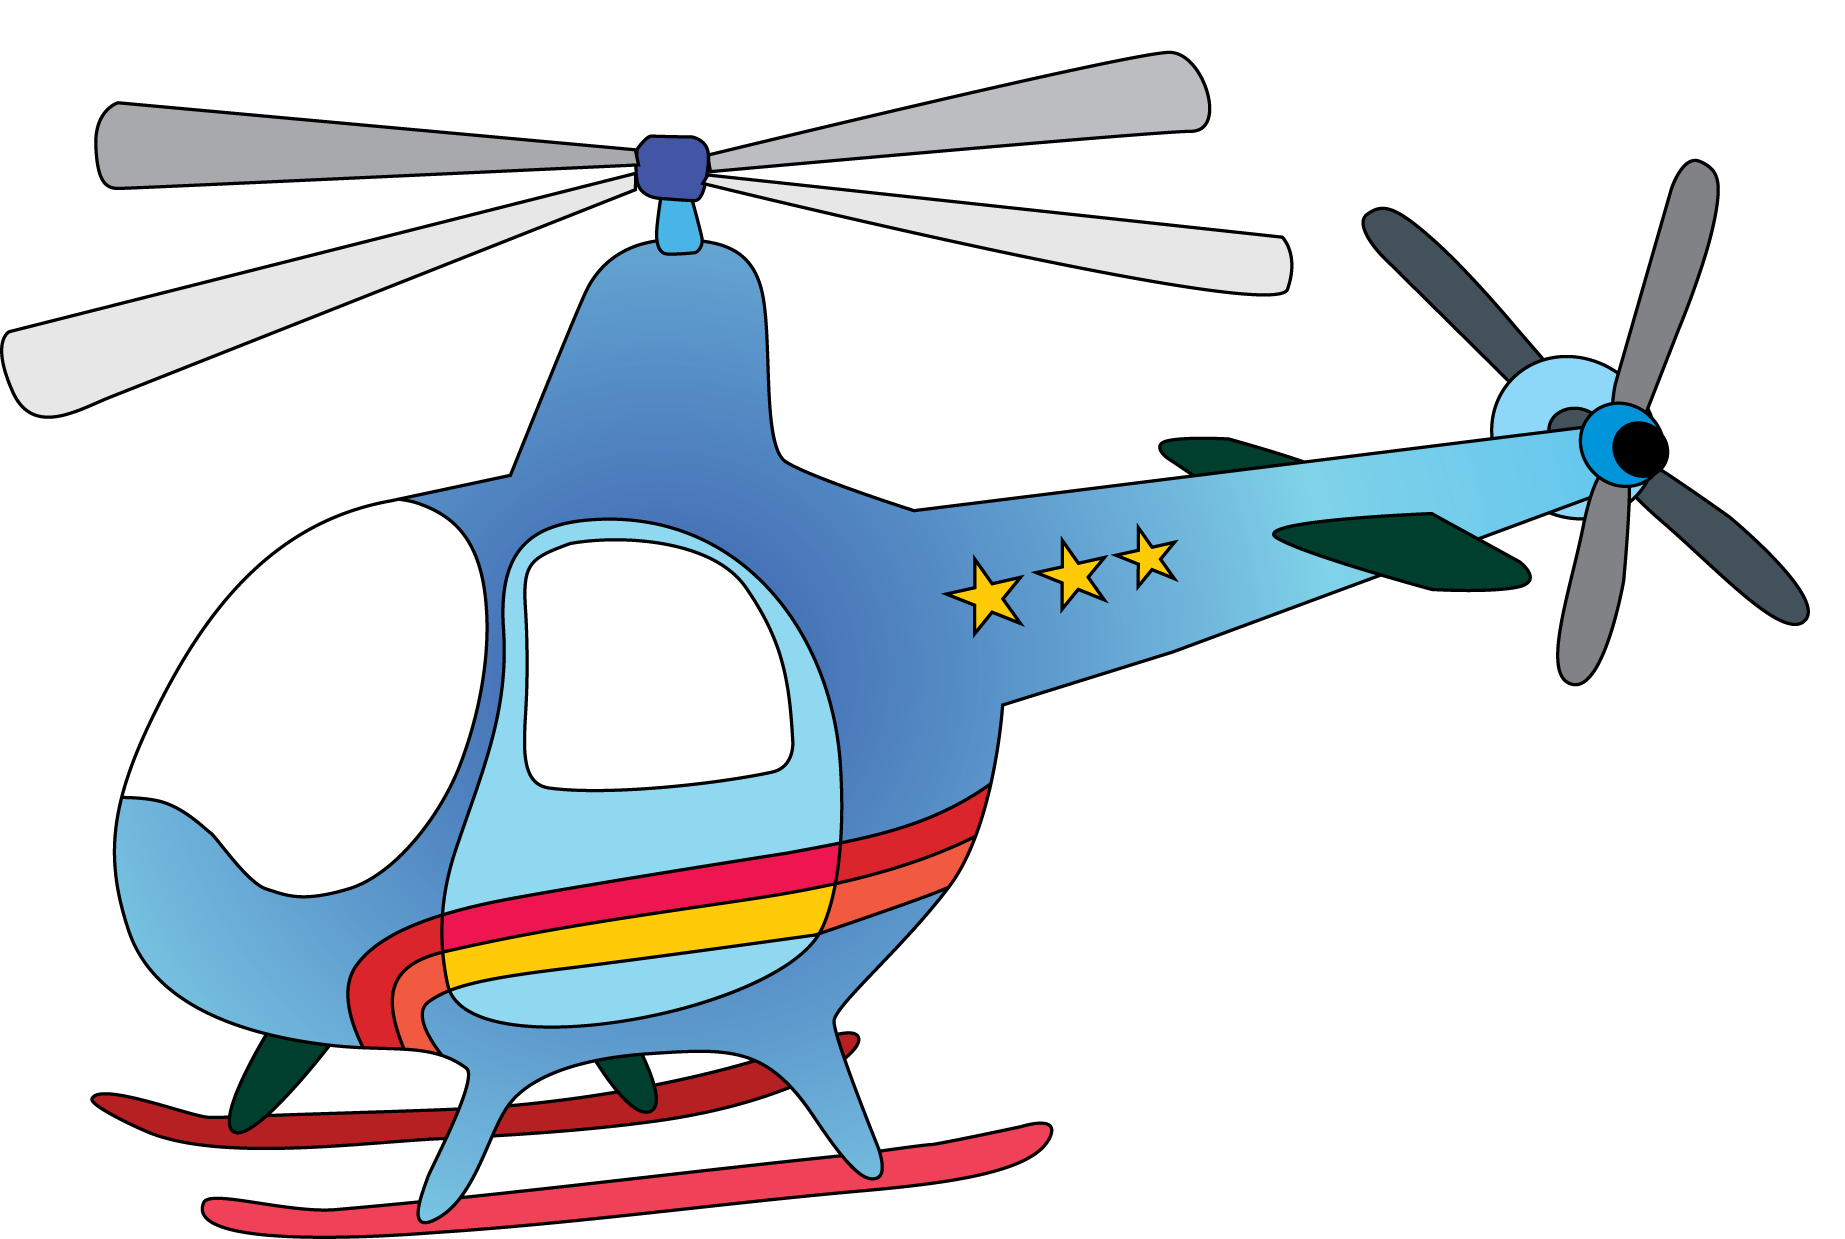 Helicopter clipart Art Panda clipart Helicopter helicopter